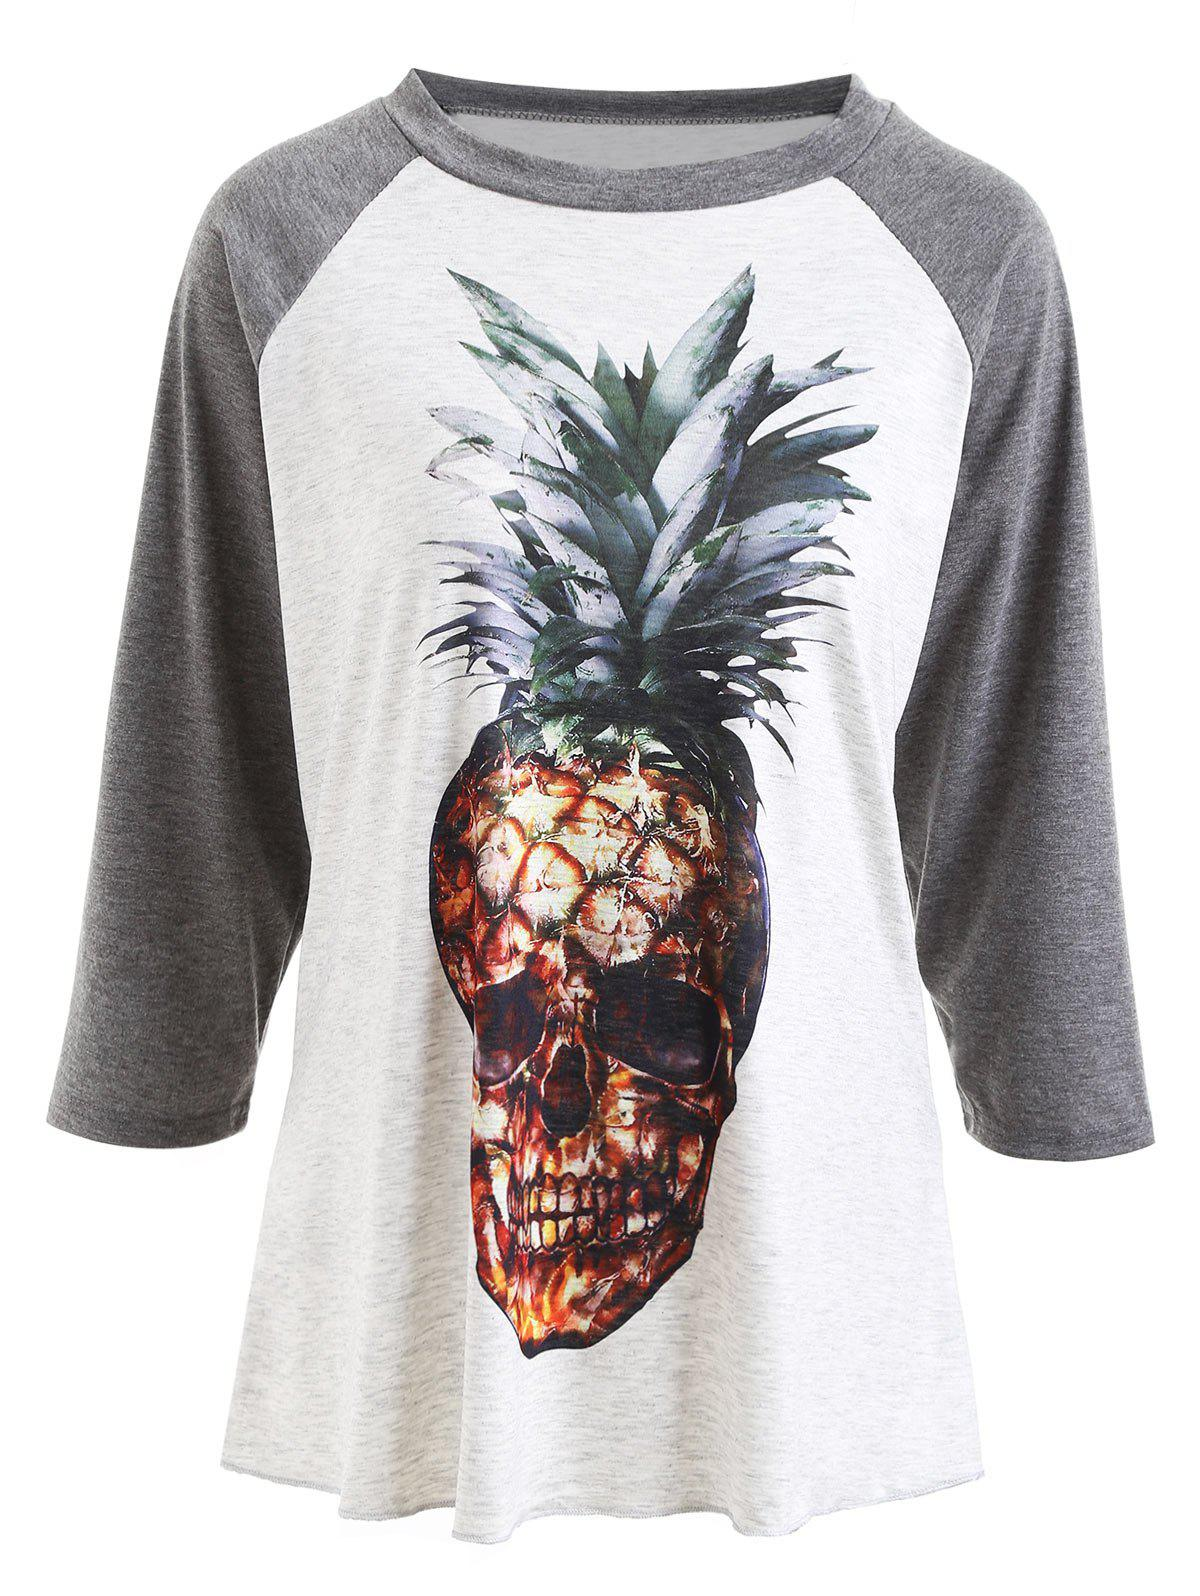 Pineapple Skull Printed Raglan Sleeve T-shirt 235561601